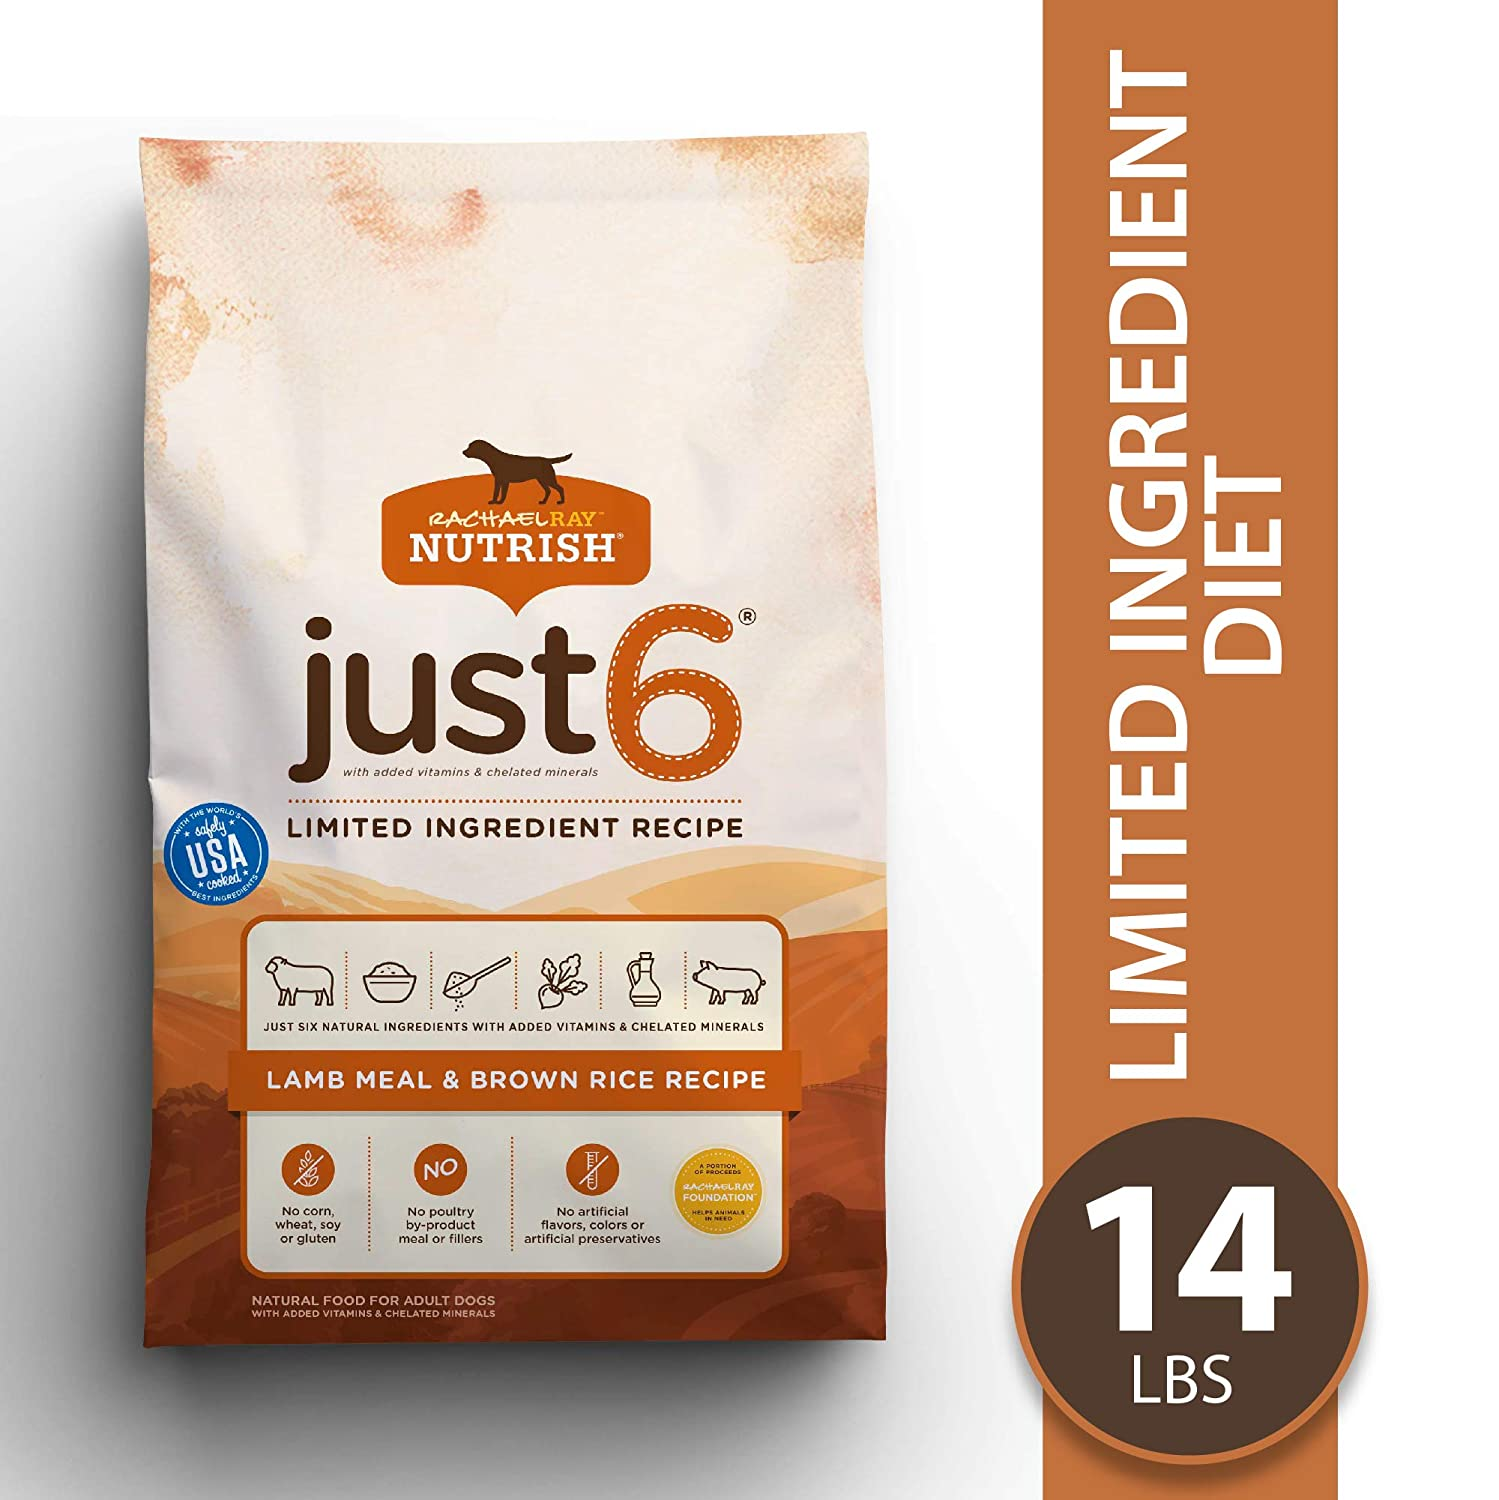 5.Rachael Ray Nutrish Just 6 Natural Limited Ingredient Diet Dry Dog Food